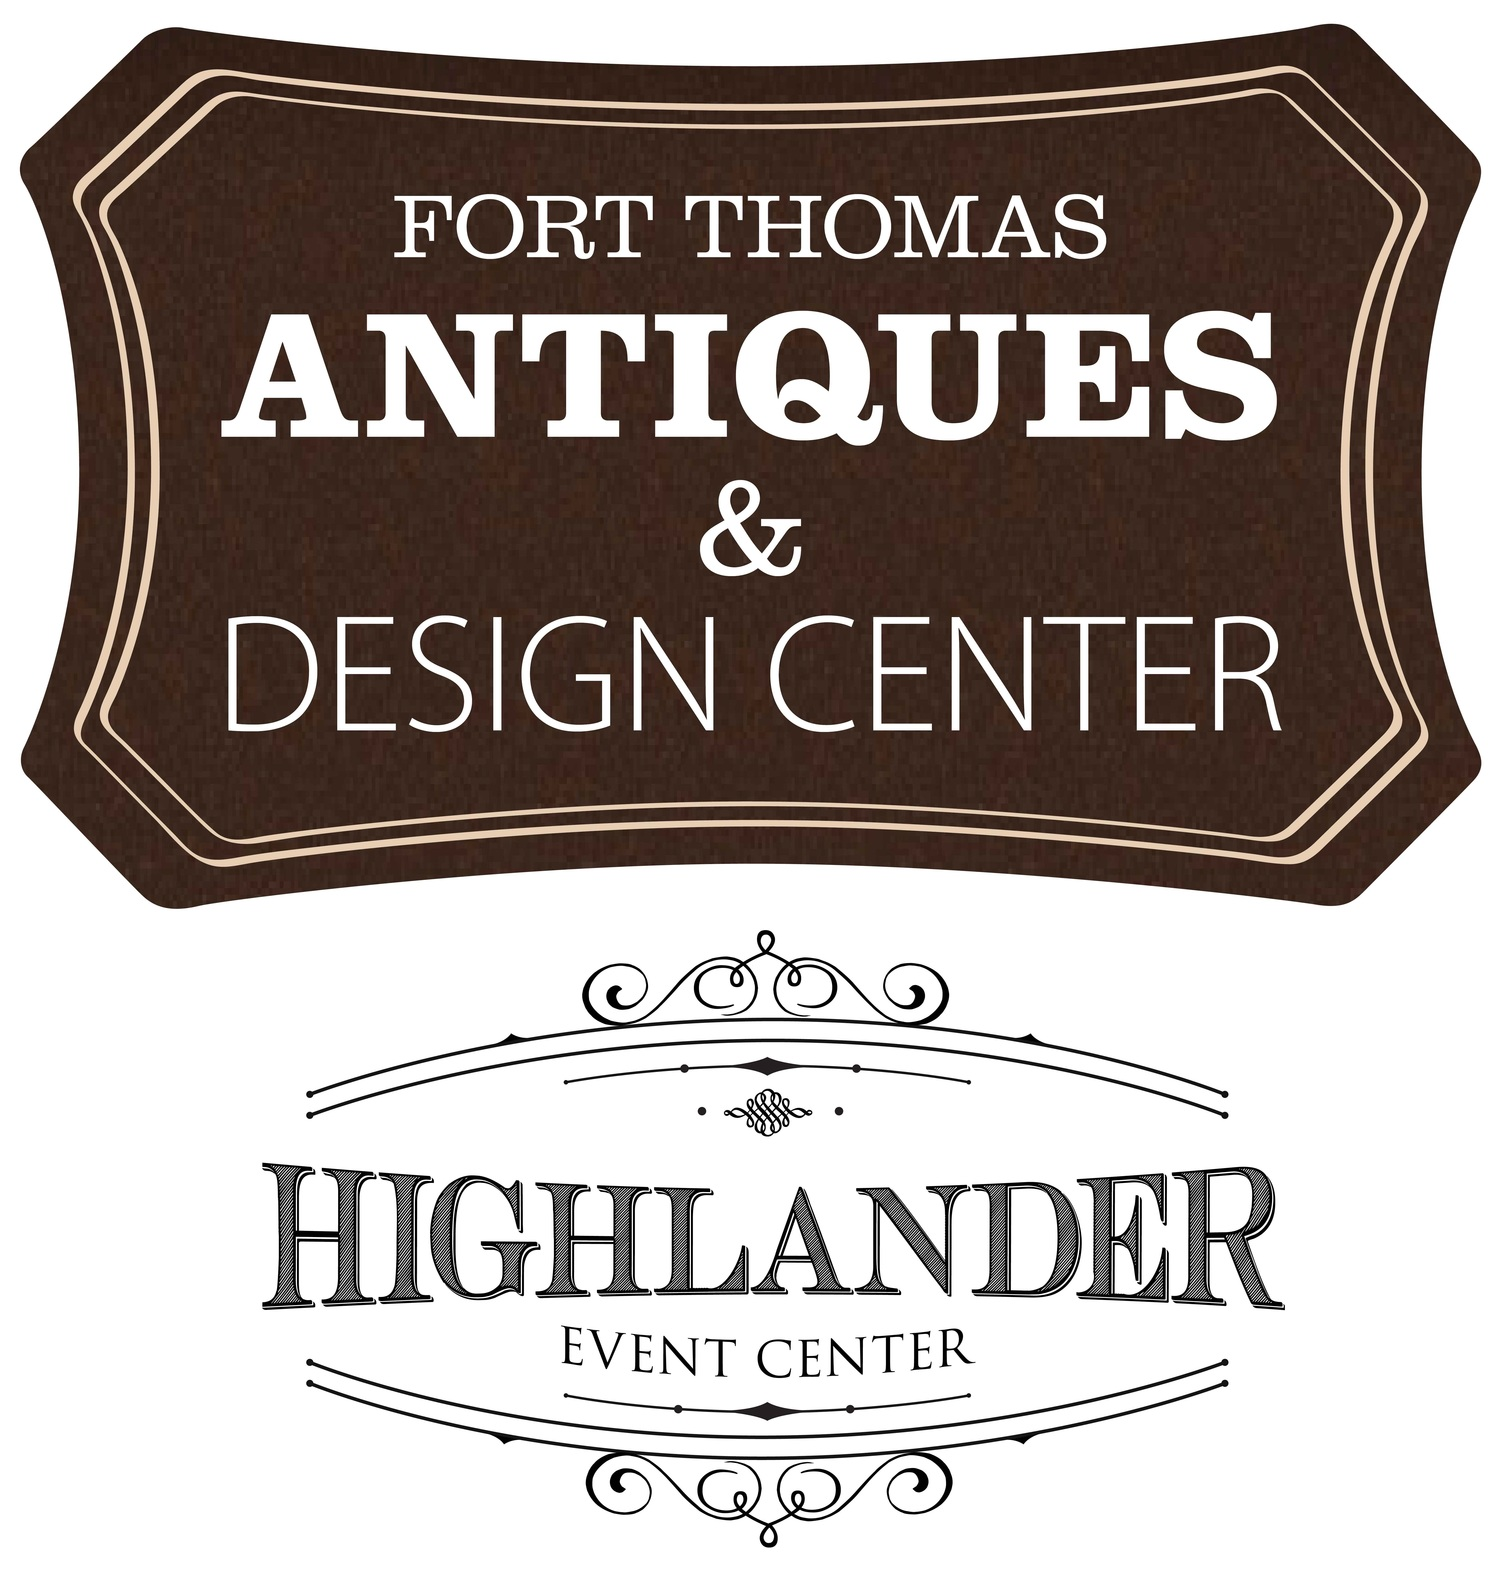 Fort Thomas Antiques & Design Center